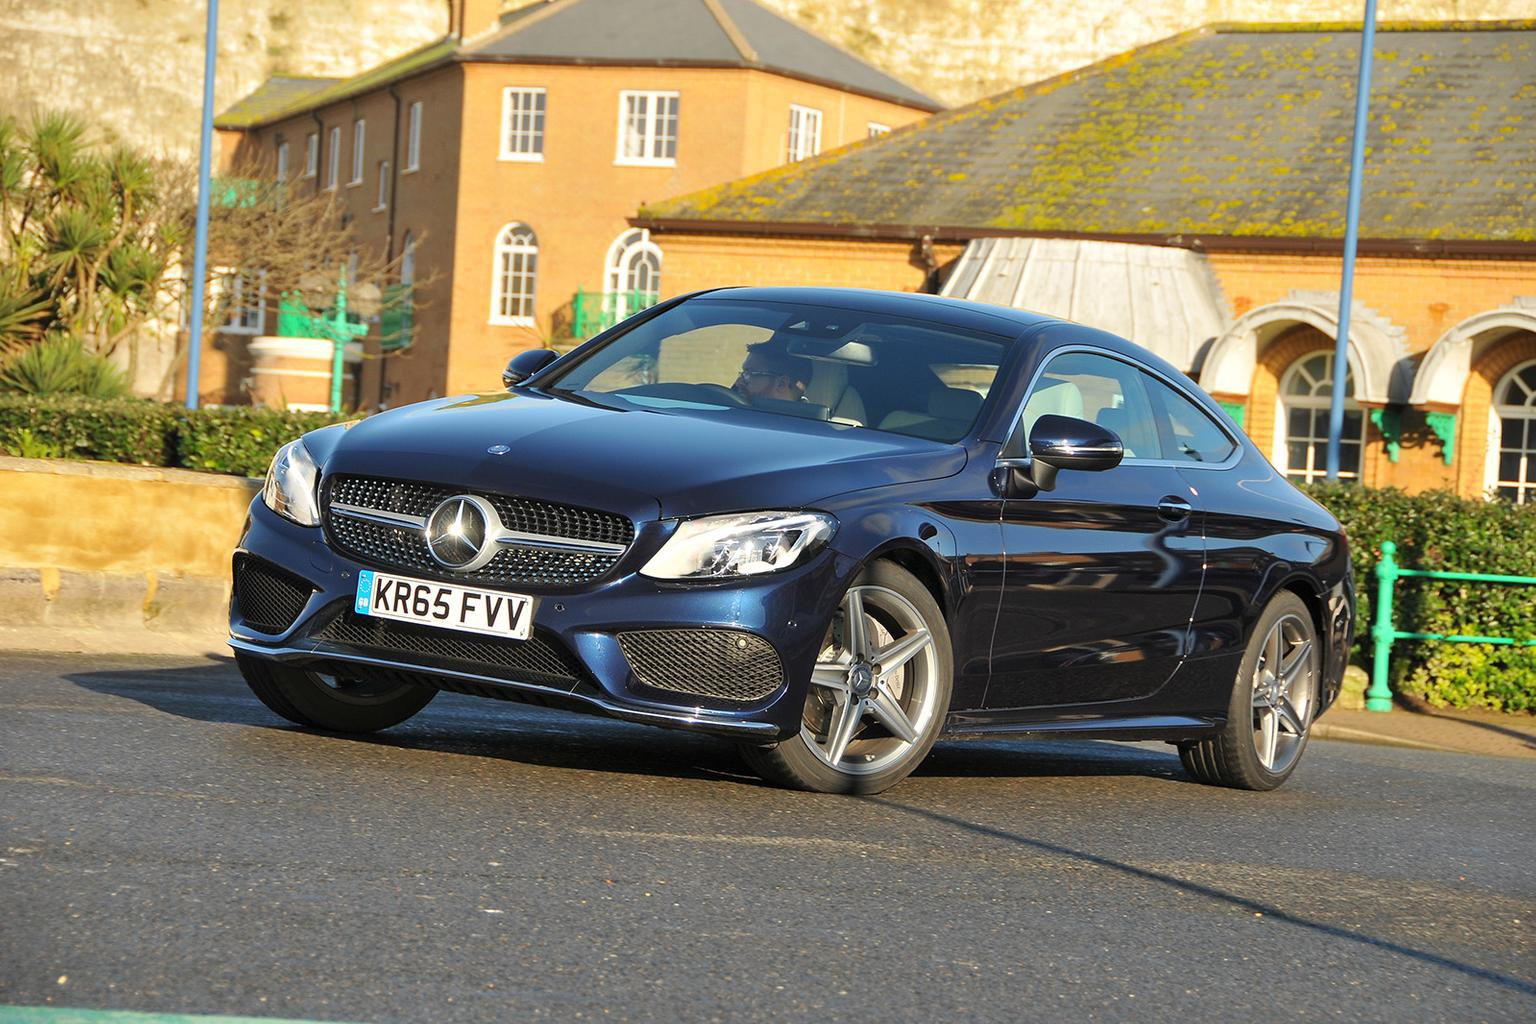 2016 Mercedes-Benz C-Class C 220 d Coupe review